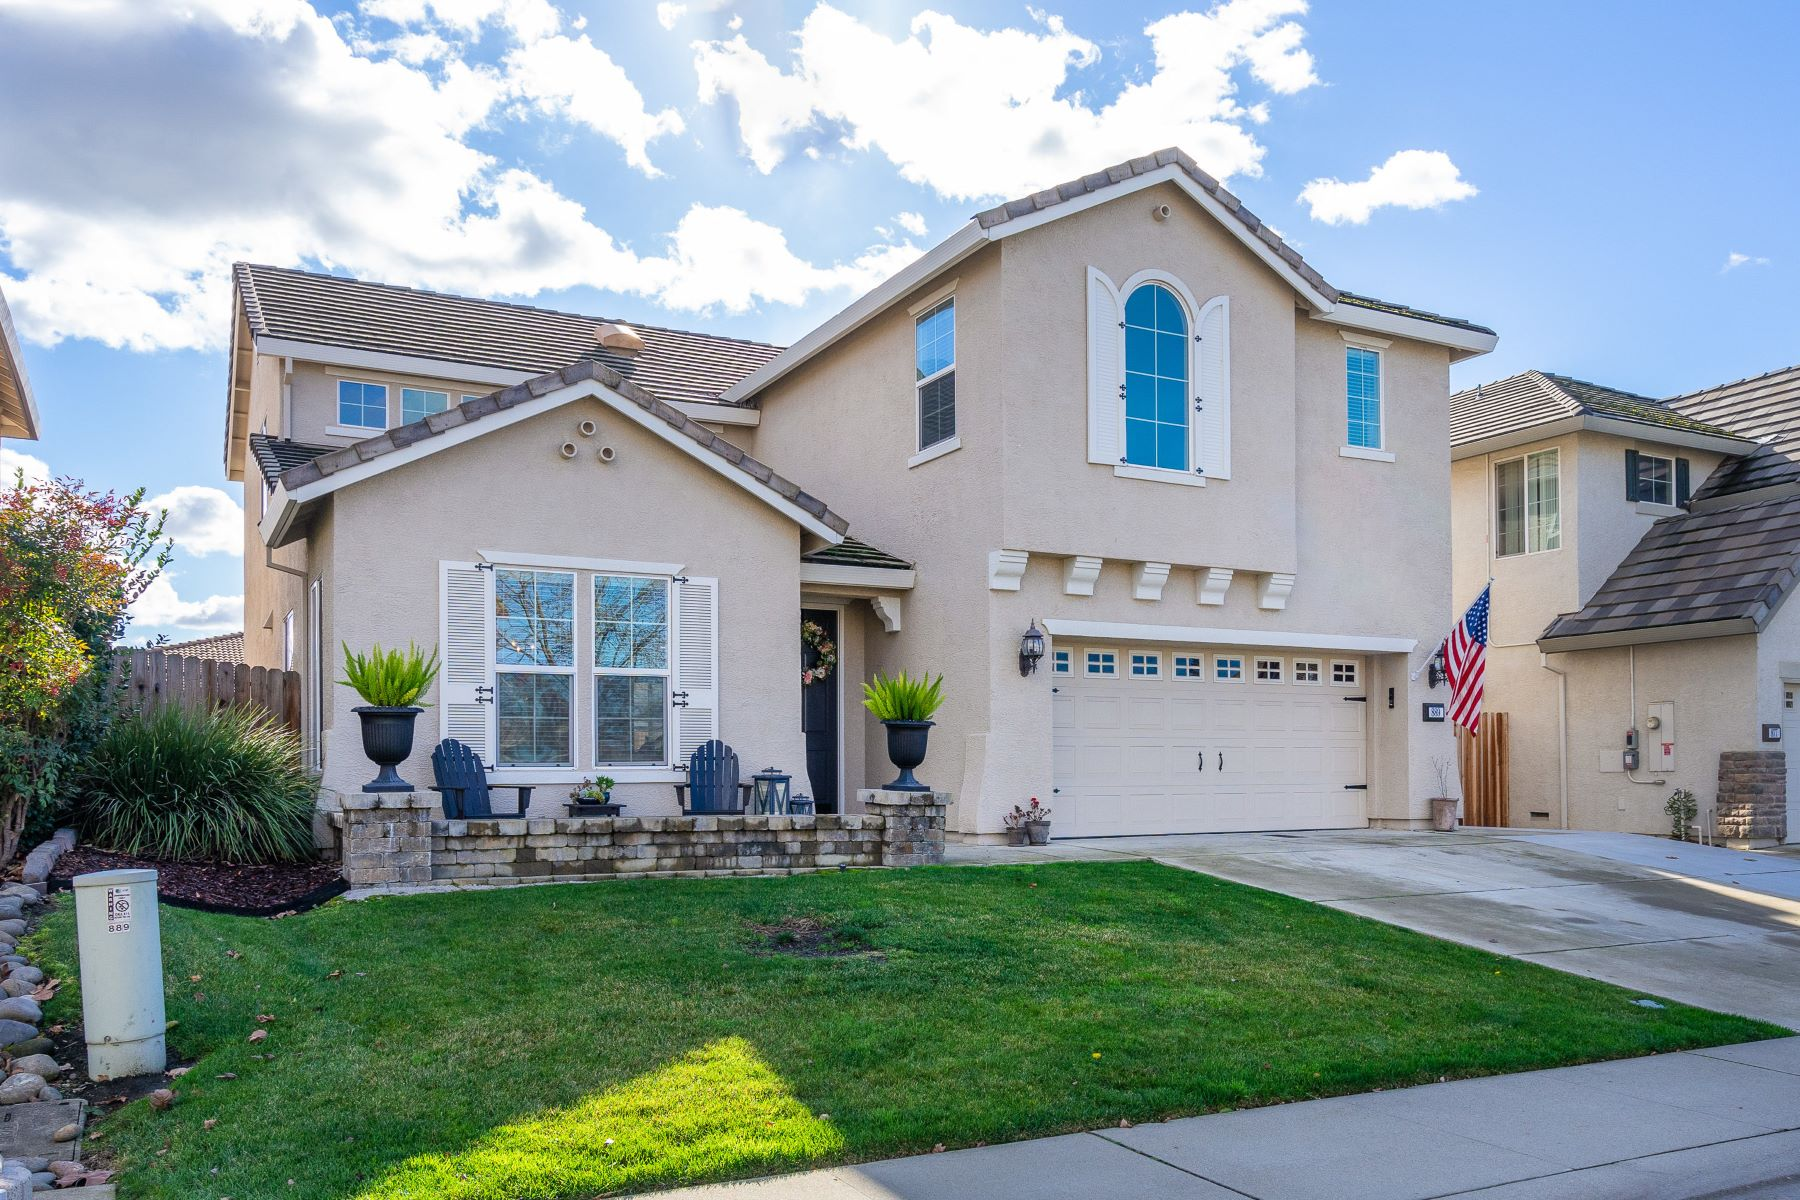 Single Family Home for Active at Twelve Bridges Luxury Living at it's Best 889 Lavastone Drive Lincoln, California 95648 United States